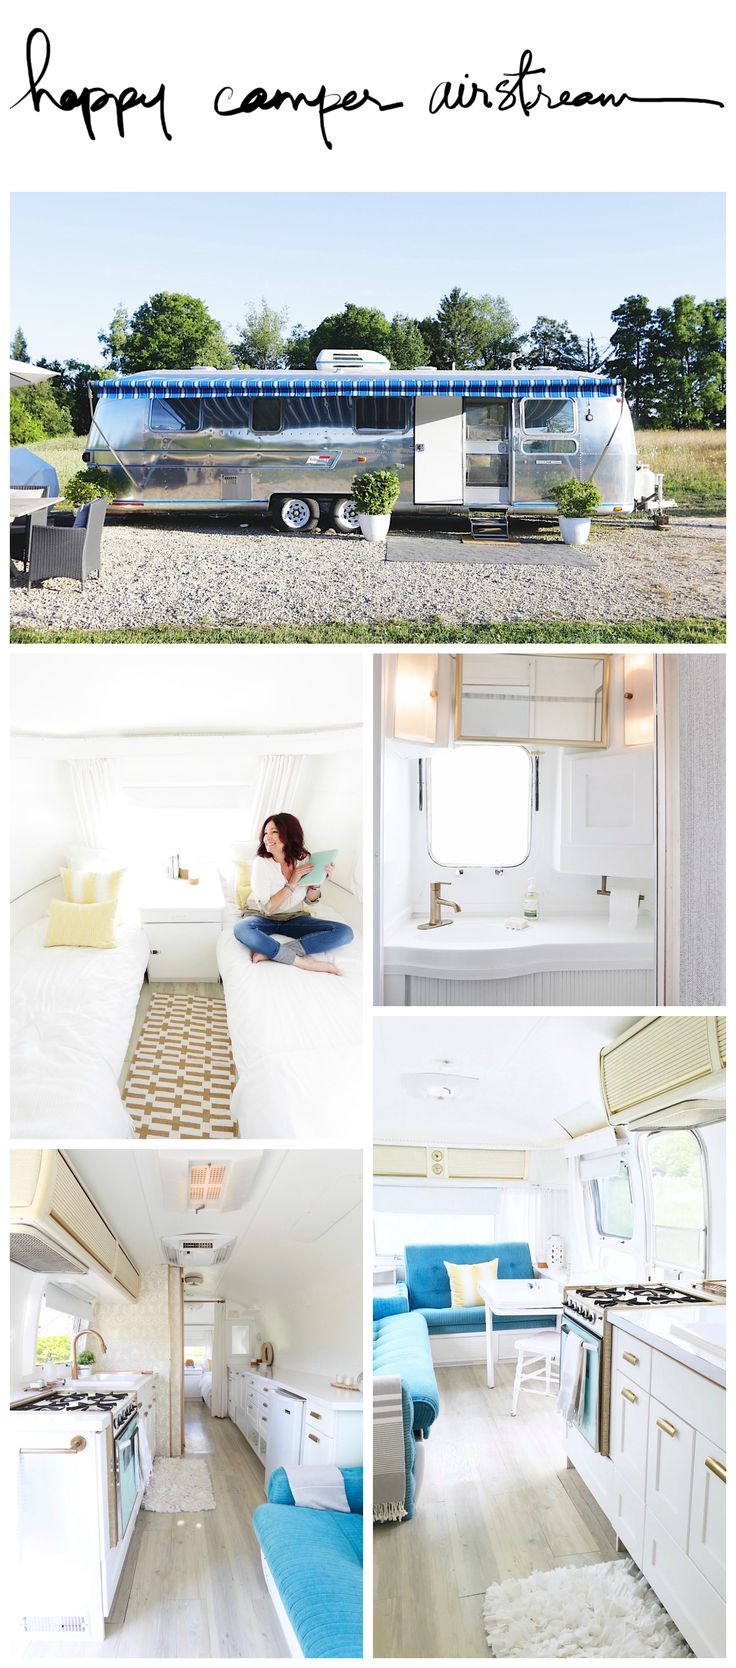 Video before after airstream renovation design the life you want to live